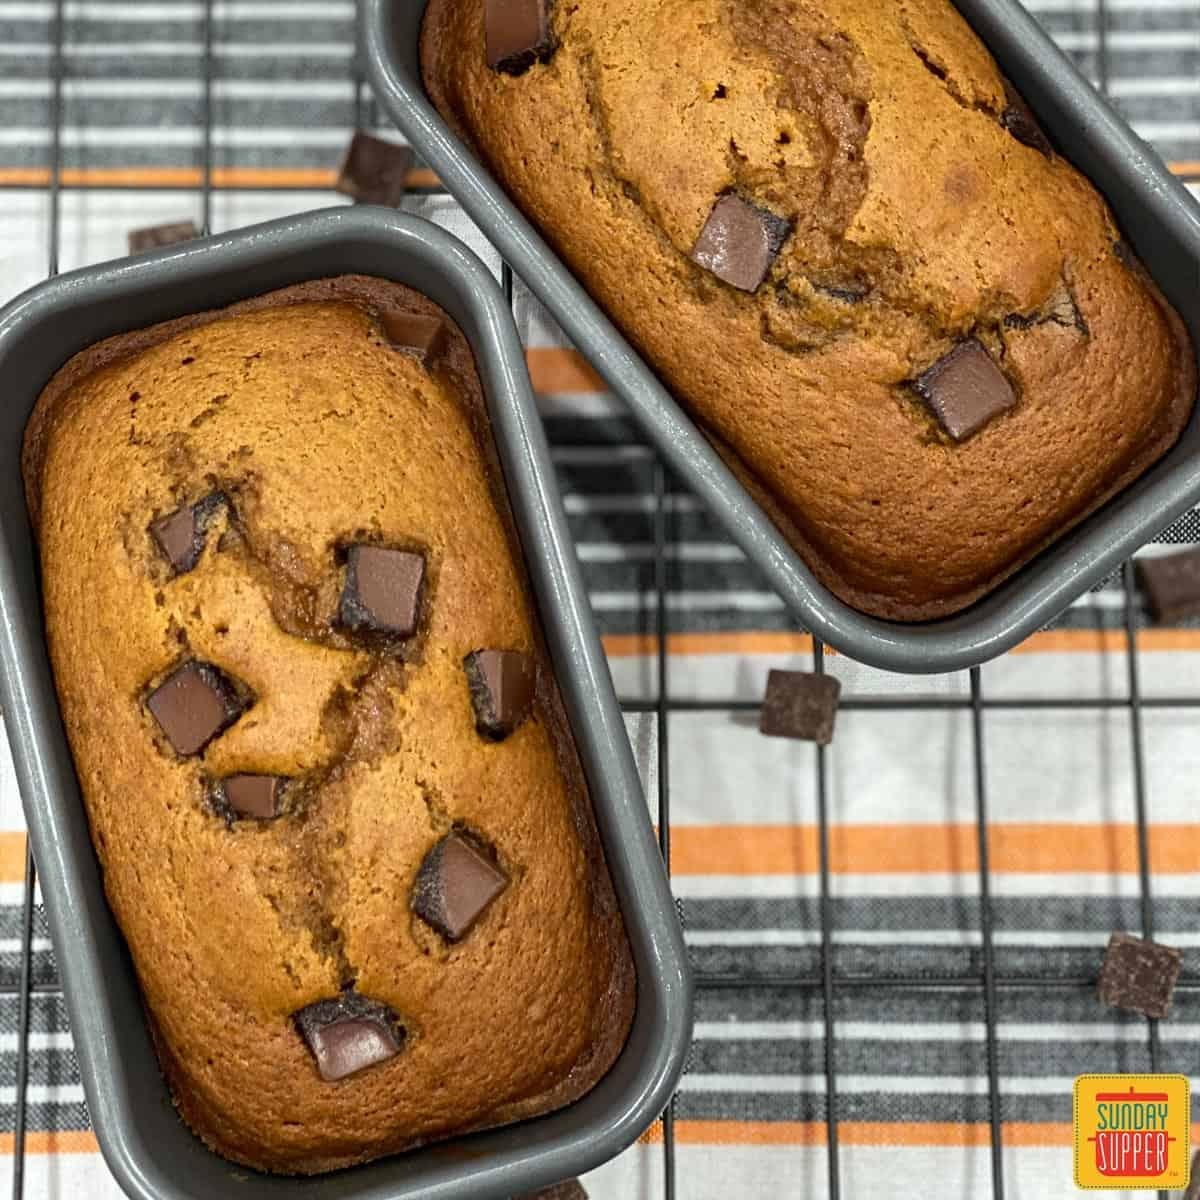 Two loaf pans of chocolate chip pumpkin bread